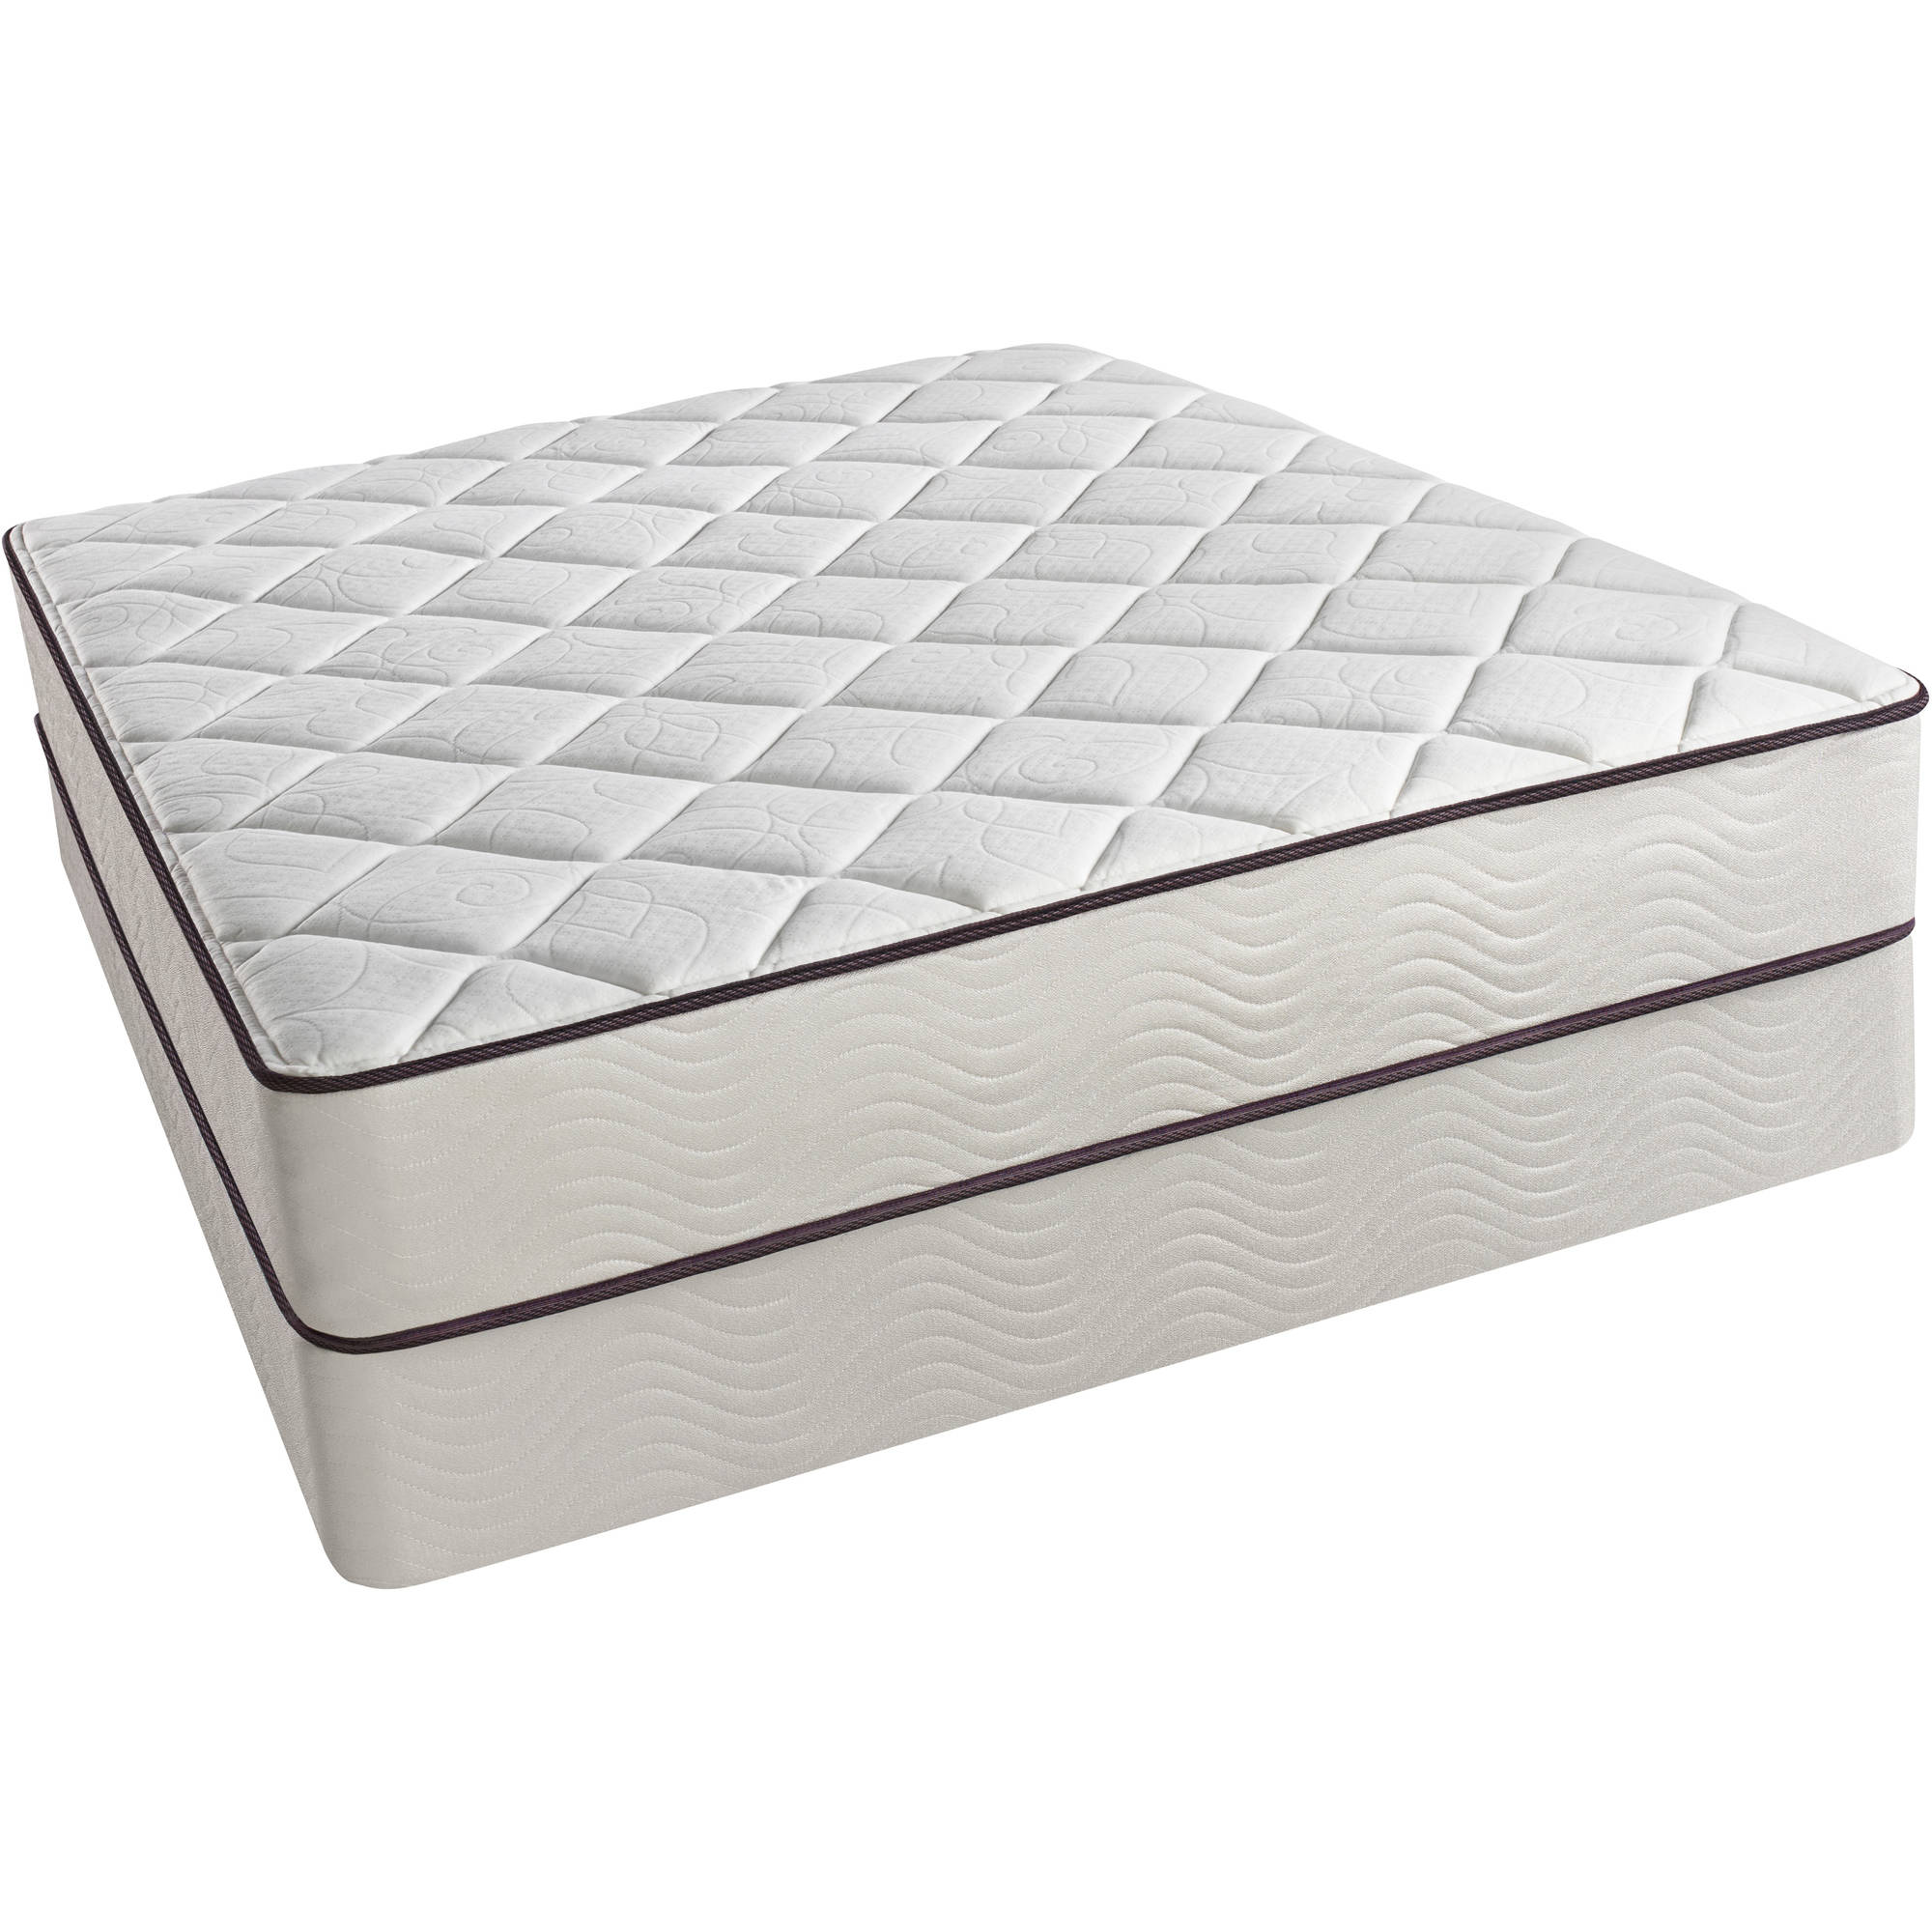 product symbol shelton pillow top queen mattress